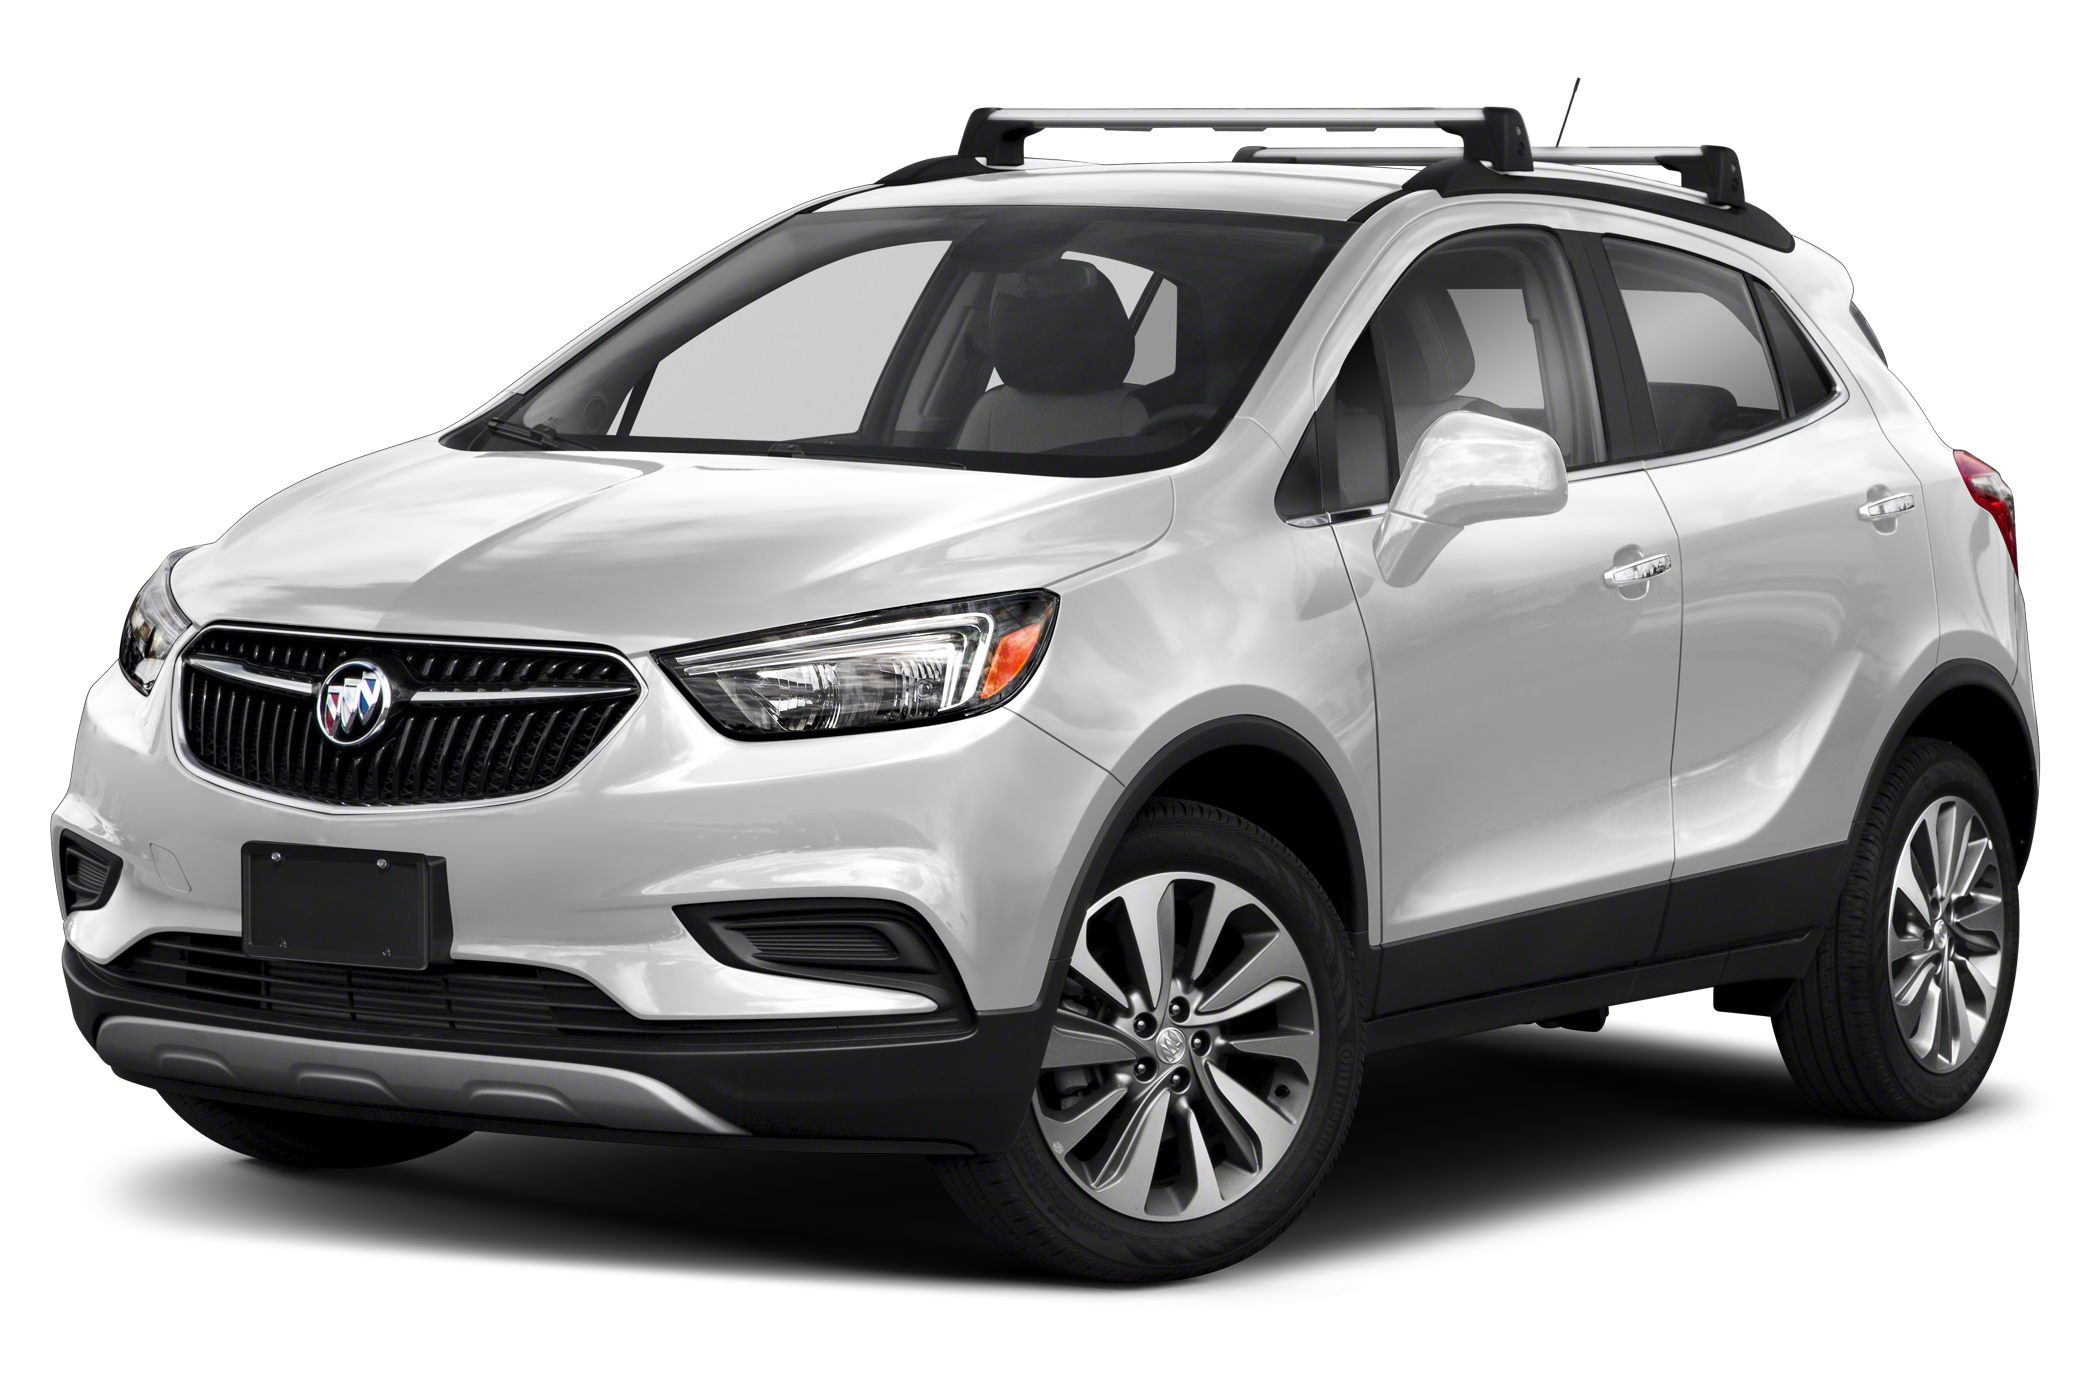 2021 Buick Encore Base Front-Wheel Drive Specs And Prices 2021 Buick Encore Essence Price, Interior, Dimensions